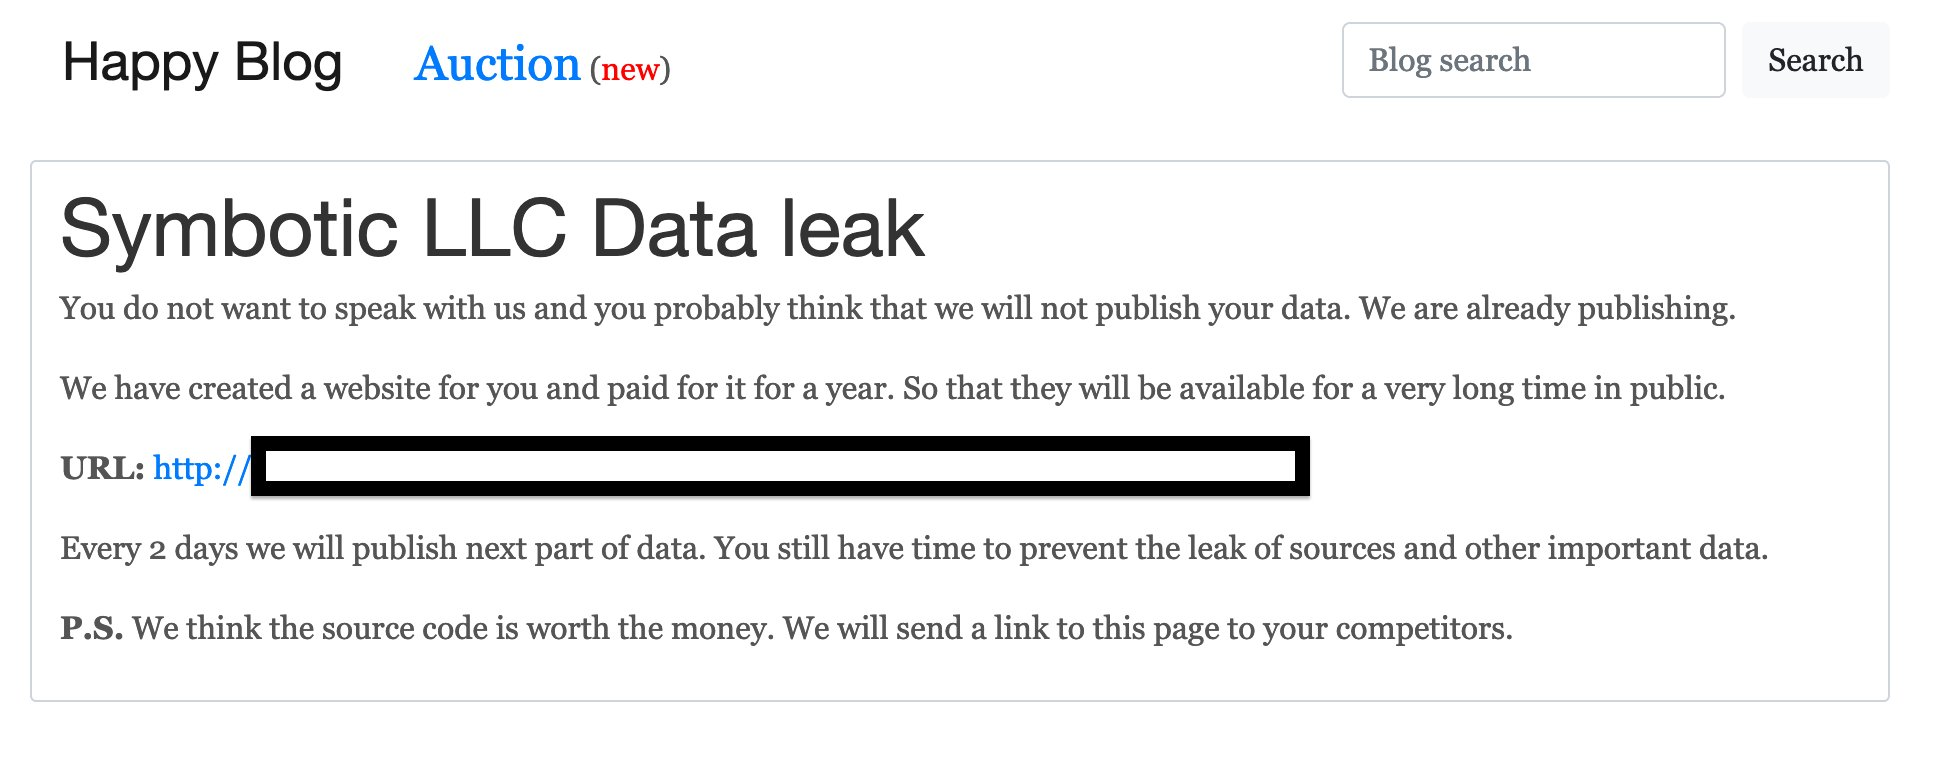 Symbotic LLC Data leak